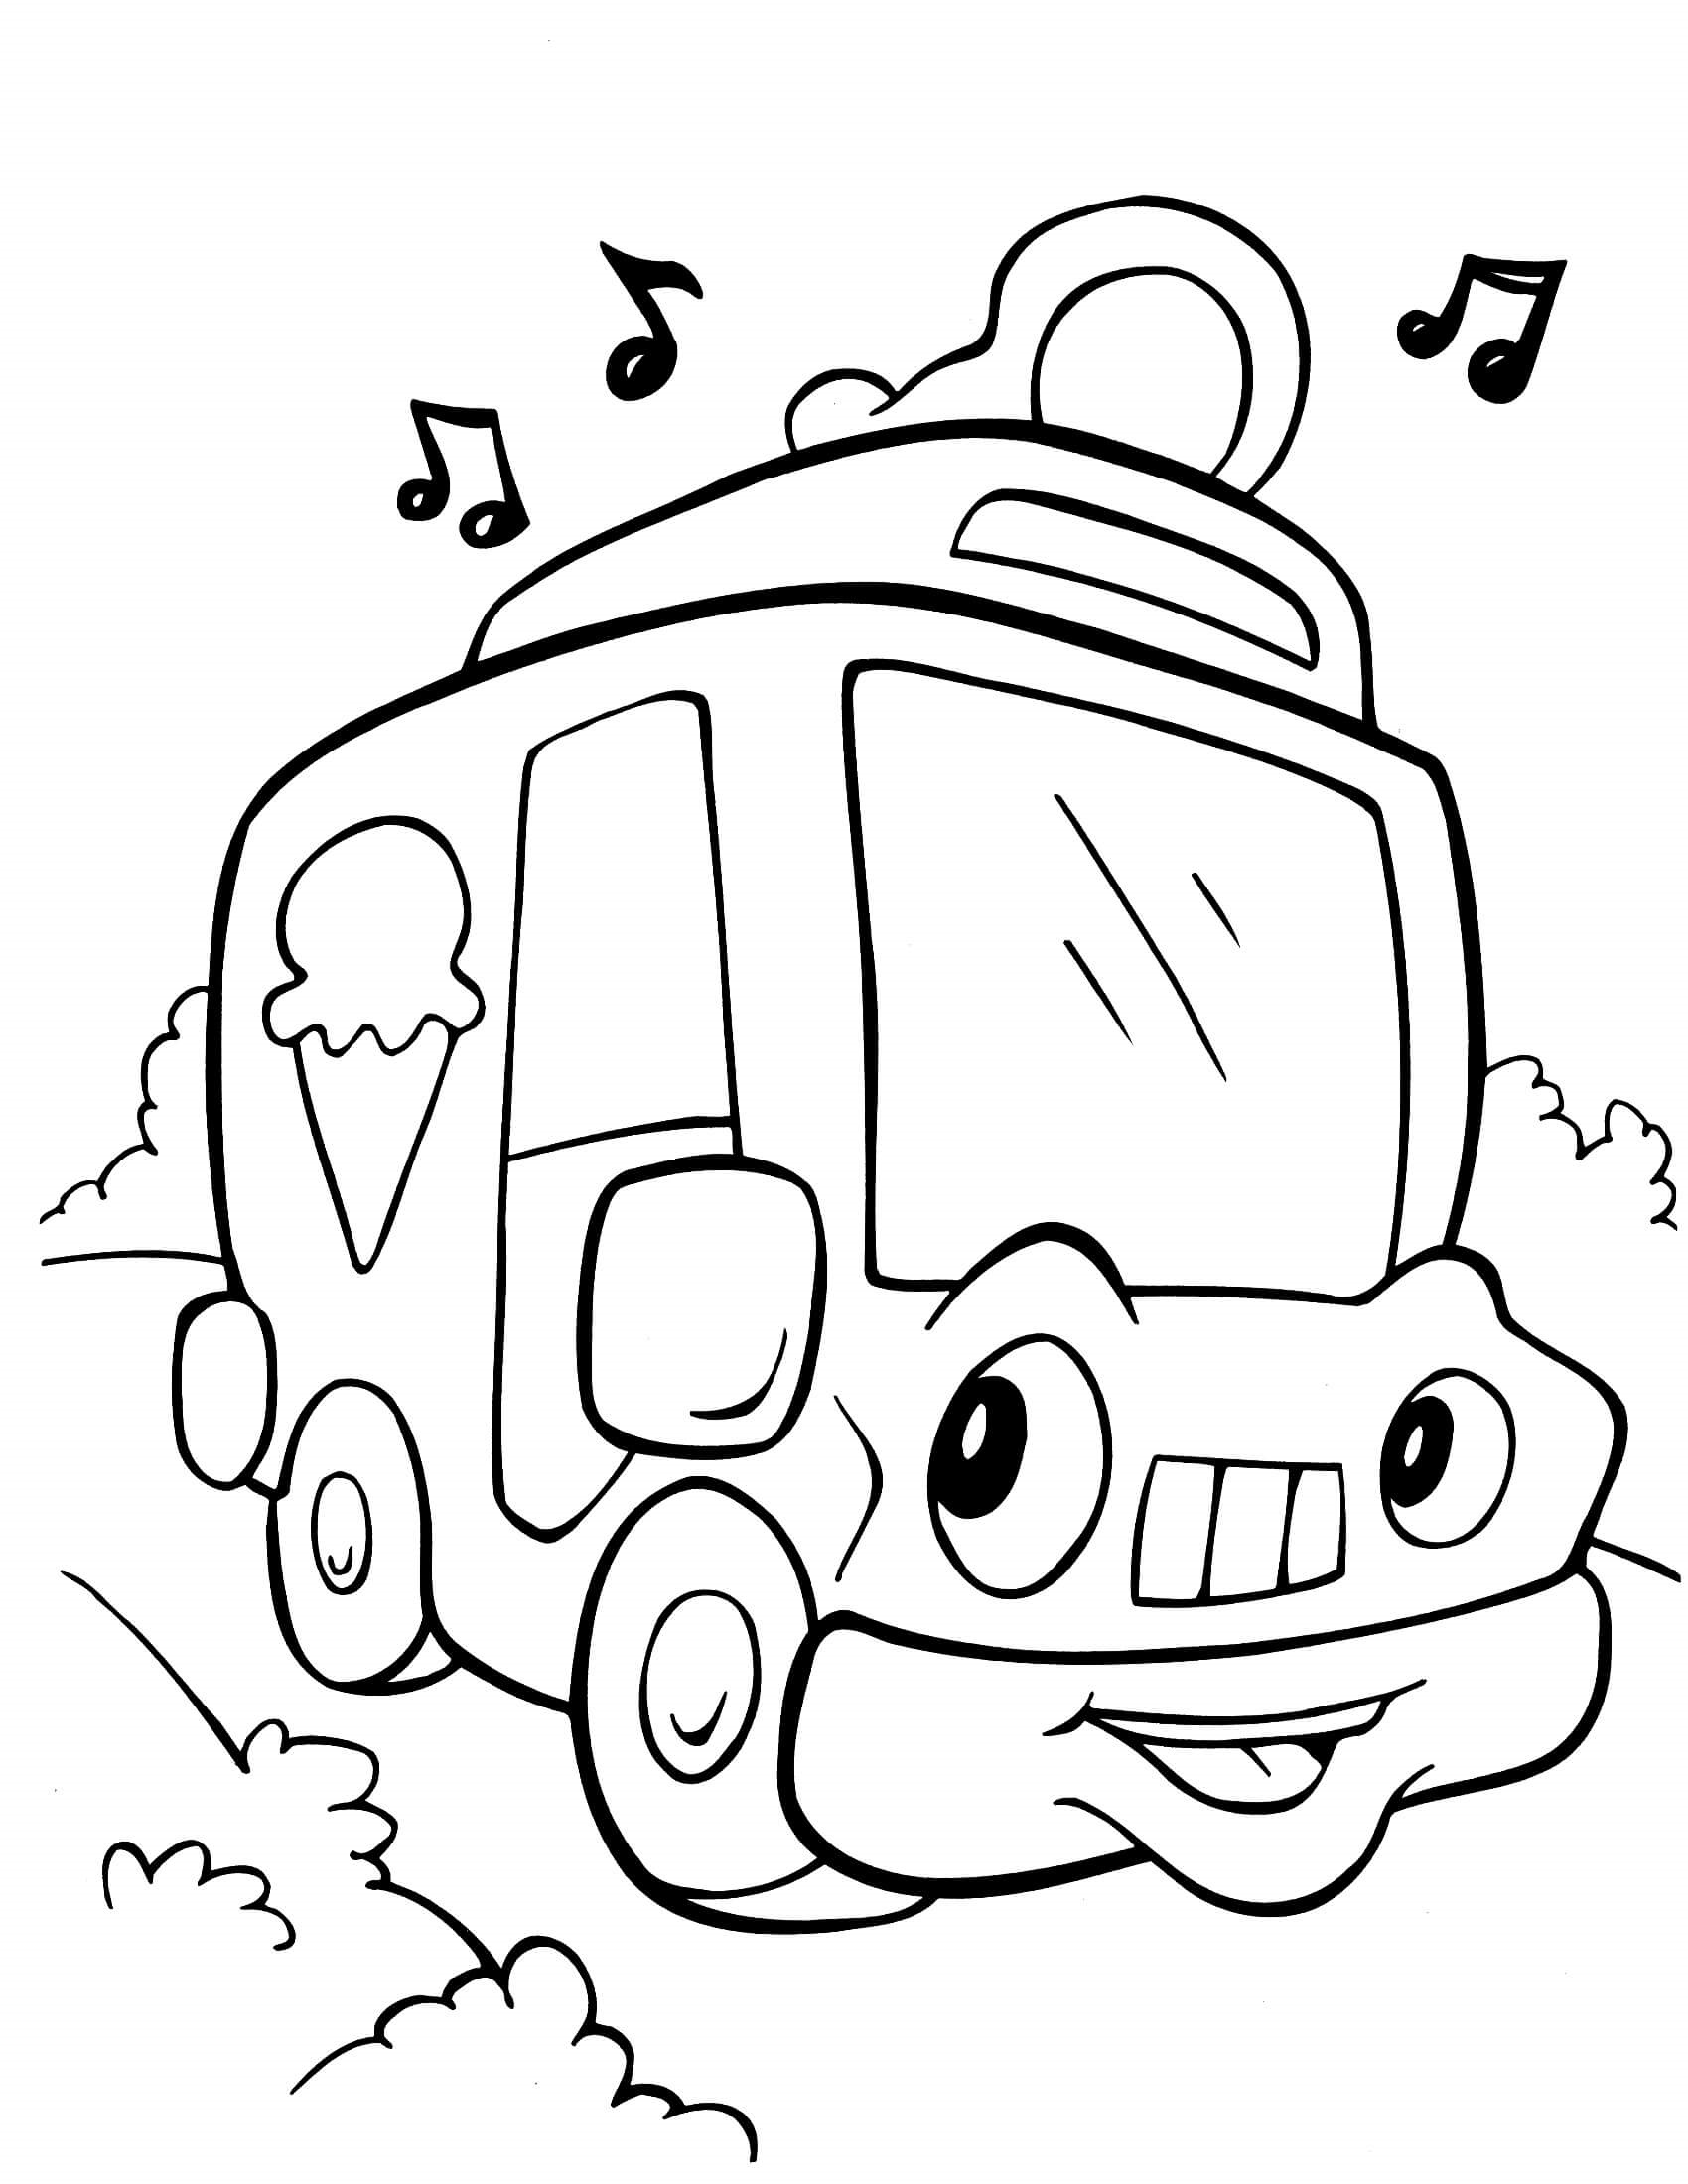 crayola coloring pages for kids printable - crayola coloring pages vehicle learning printable